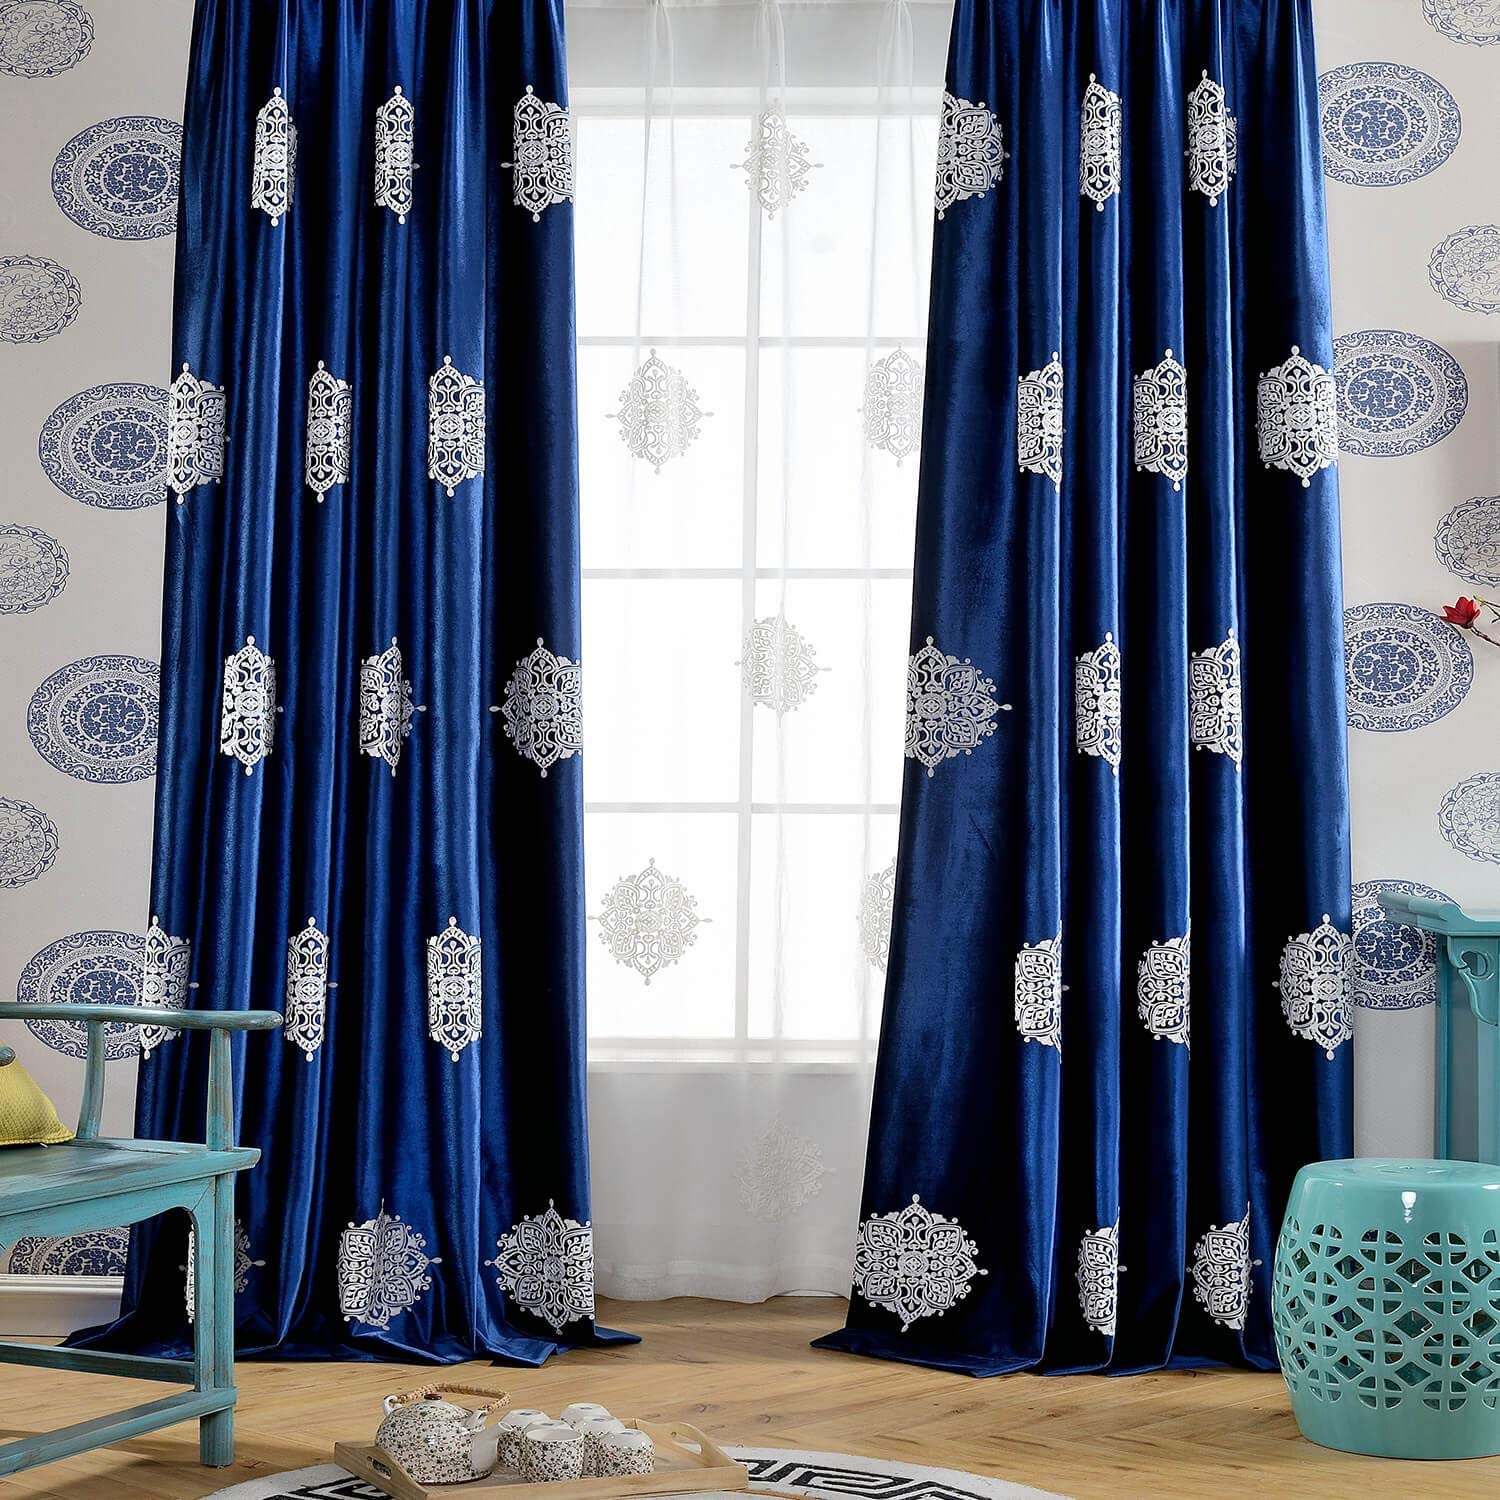 Floral Curtains drapes blue curtains nursery curtains baby gift new born Bedding